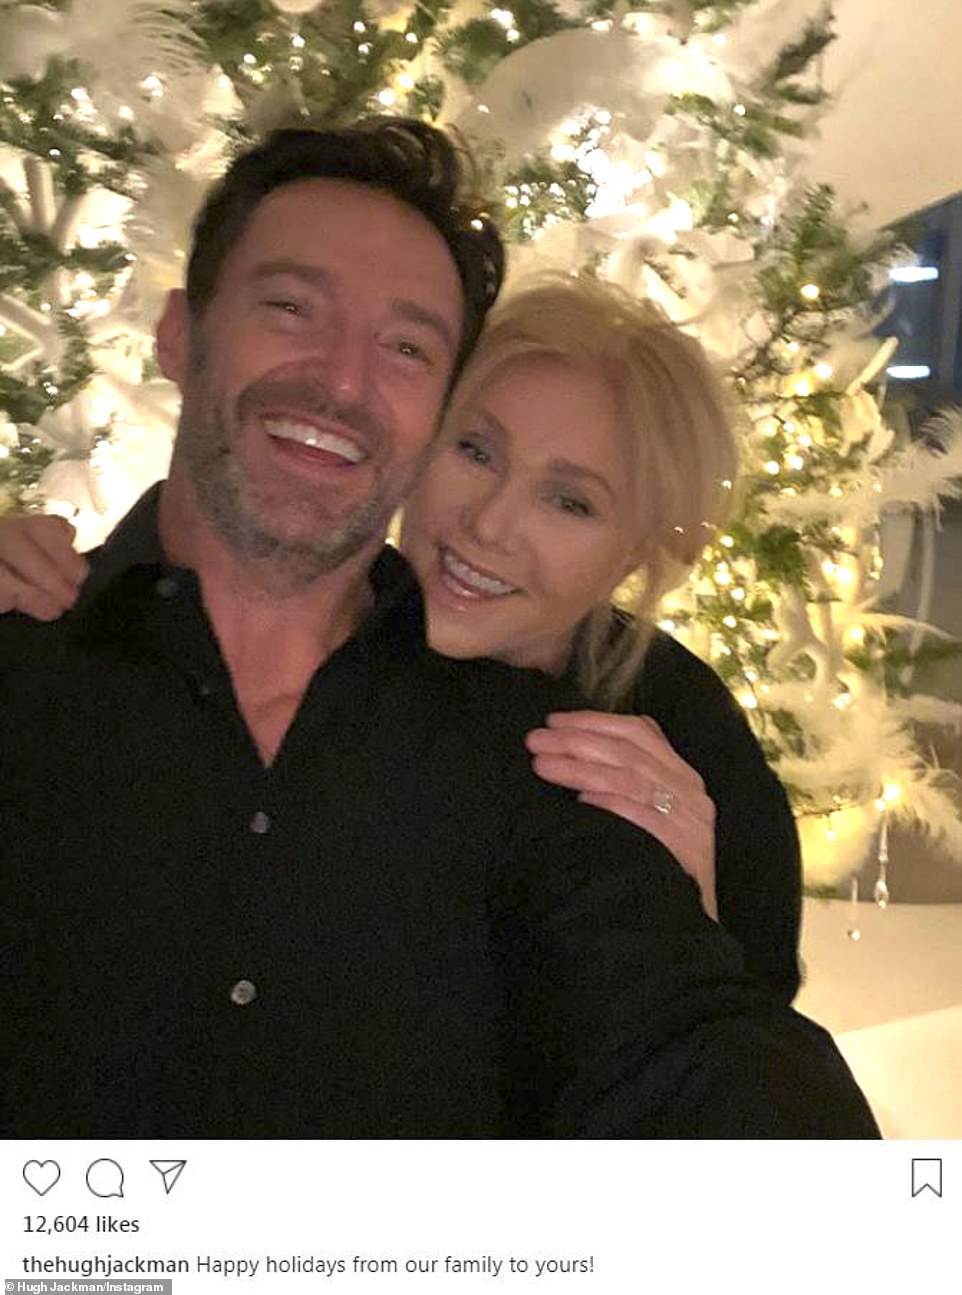 Christmas couple:Retired Wolverine Hugh Jackman posted a beautiful selfie with wife Deborra-Lee Furness in front of an illuminated white Xmas tree